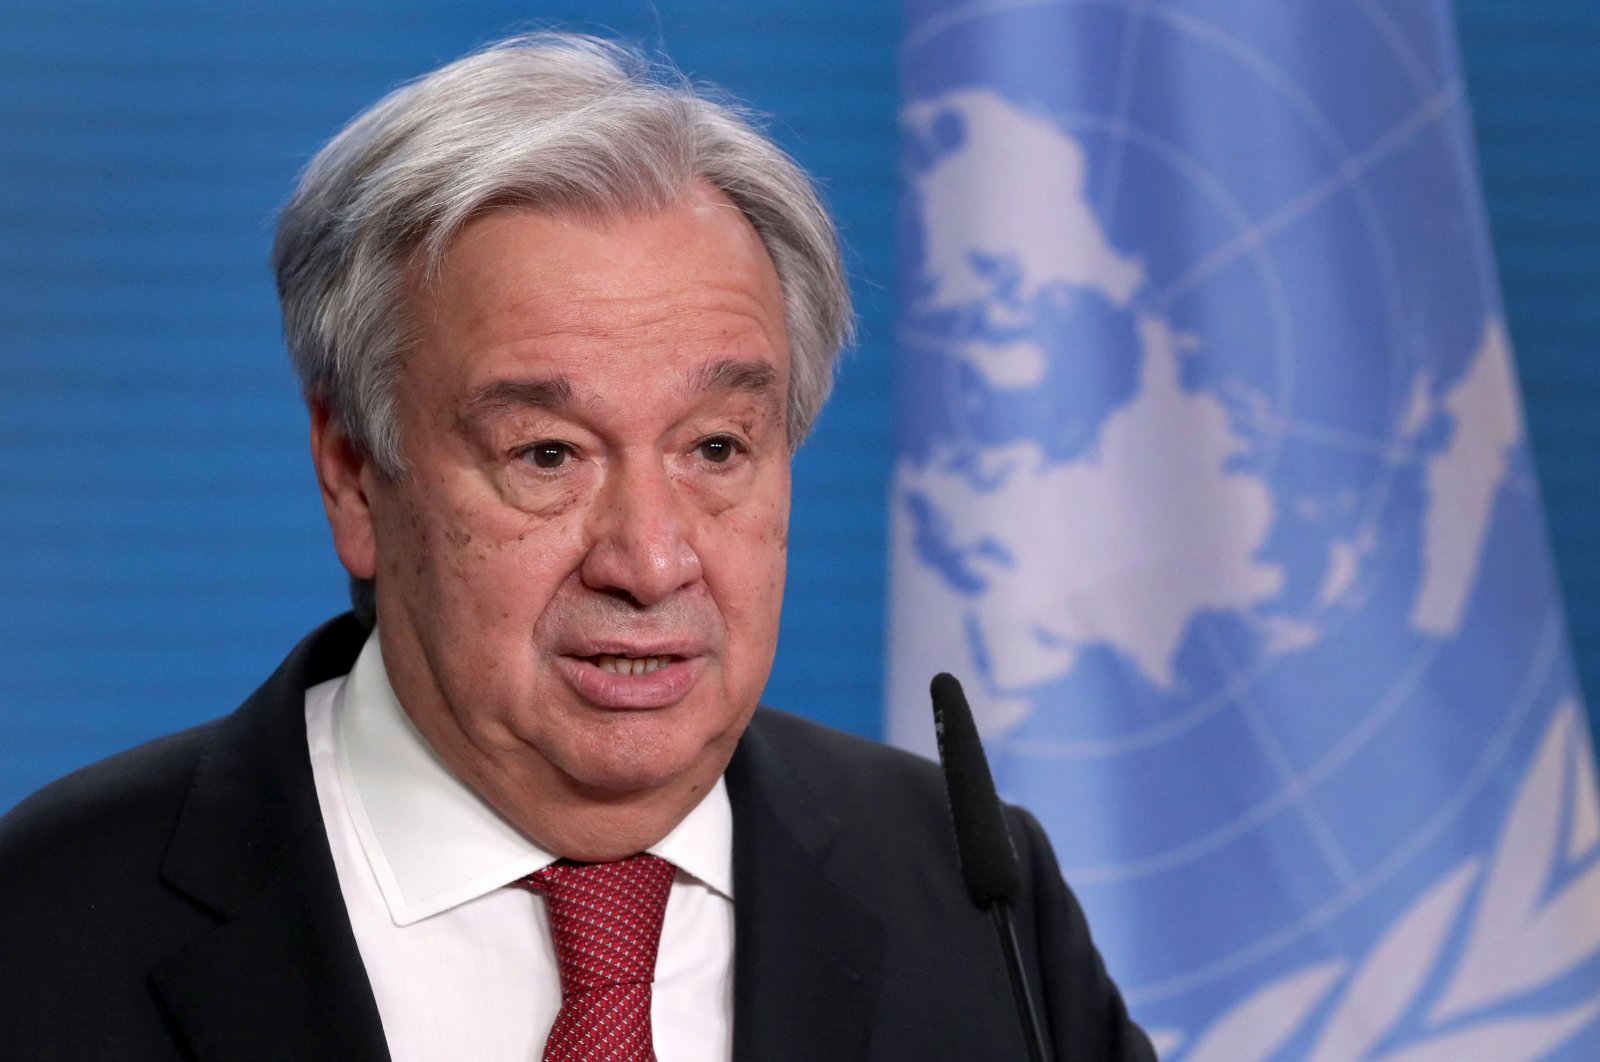 U.N. Secretary-General Antonio Guterres attends a joint press conference with the German foreign minister after a meeting in Berlin, on Dec. 17, 2020. (AFP Photo)